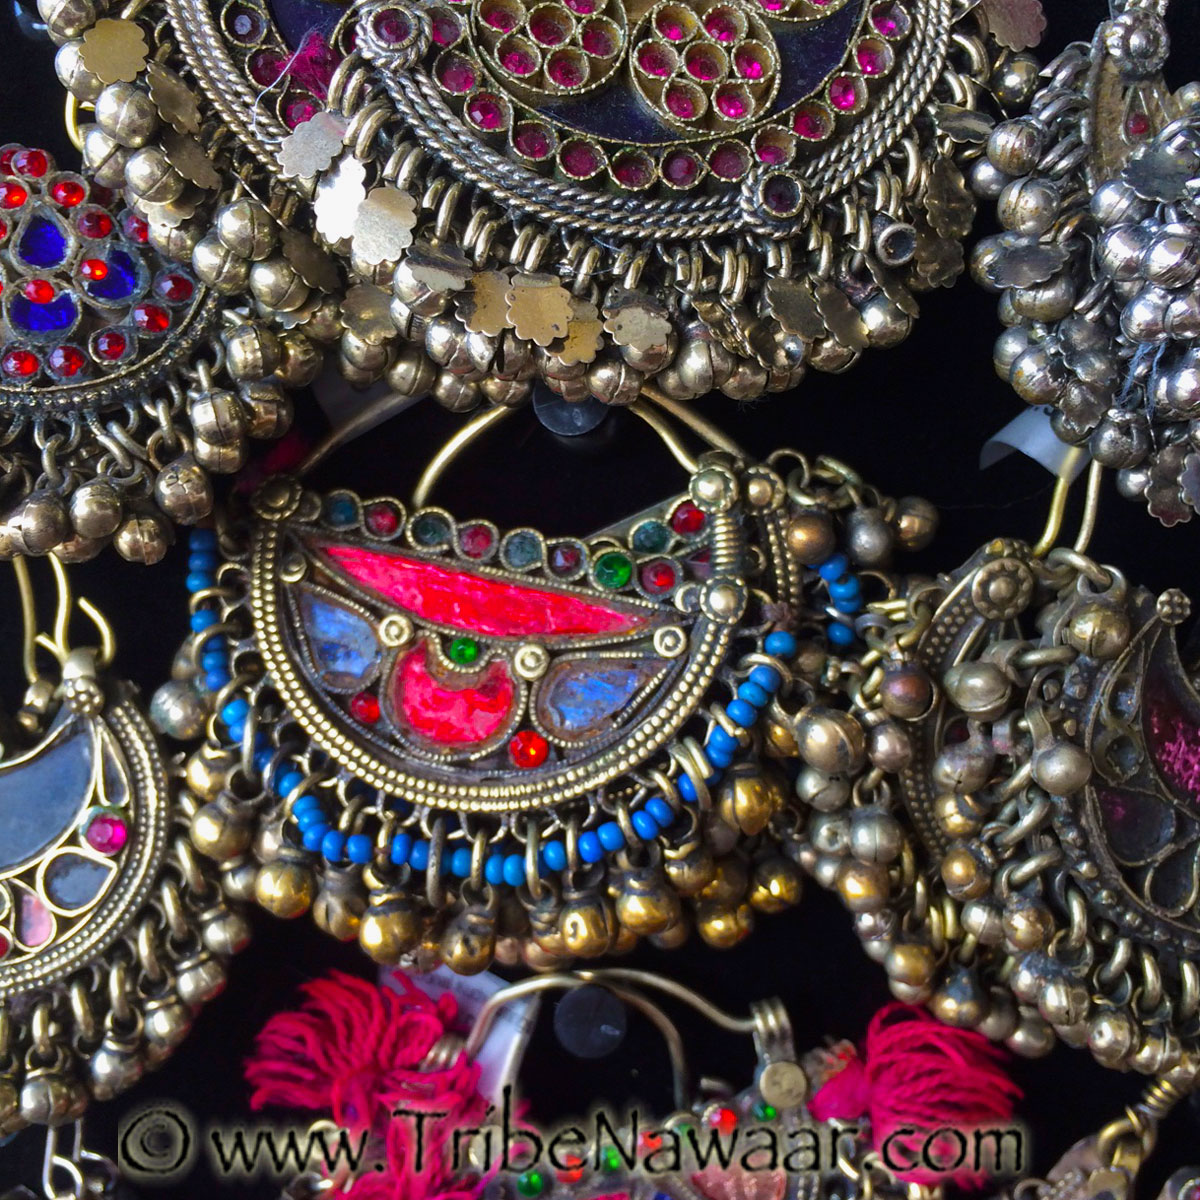 Tribe Nawaar's traditional Kuchi earrings